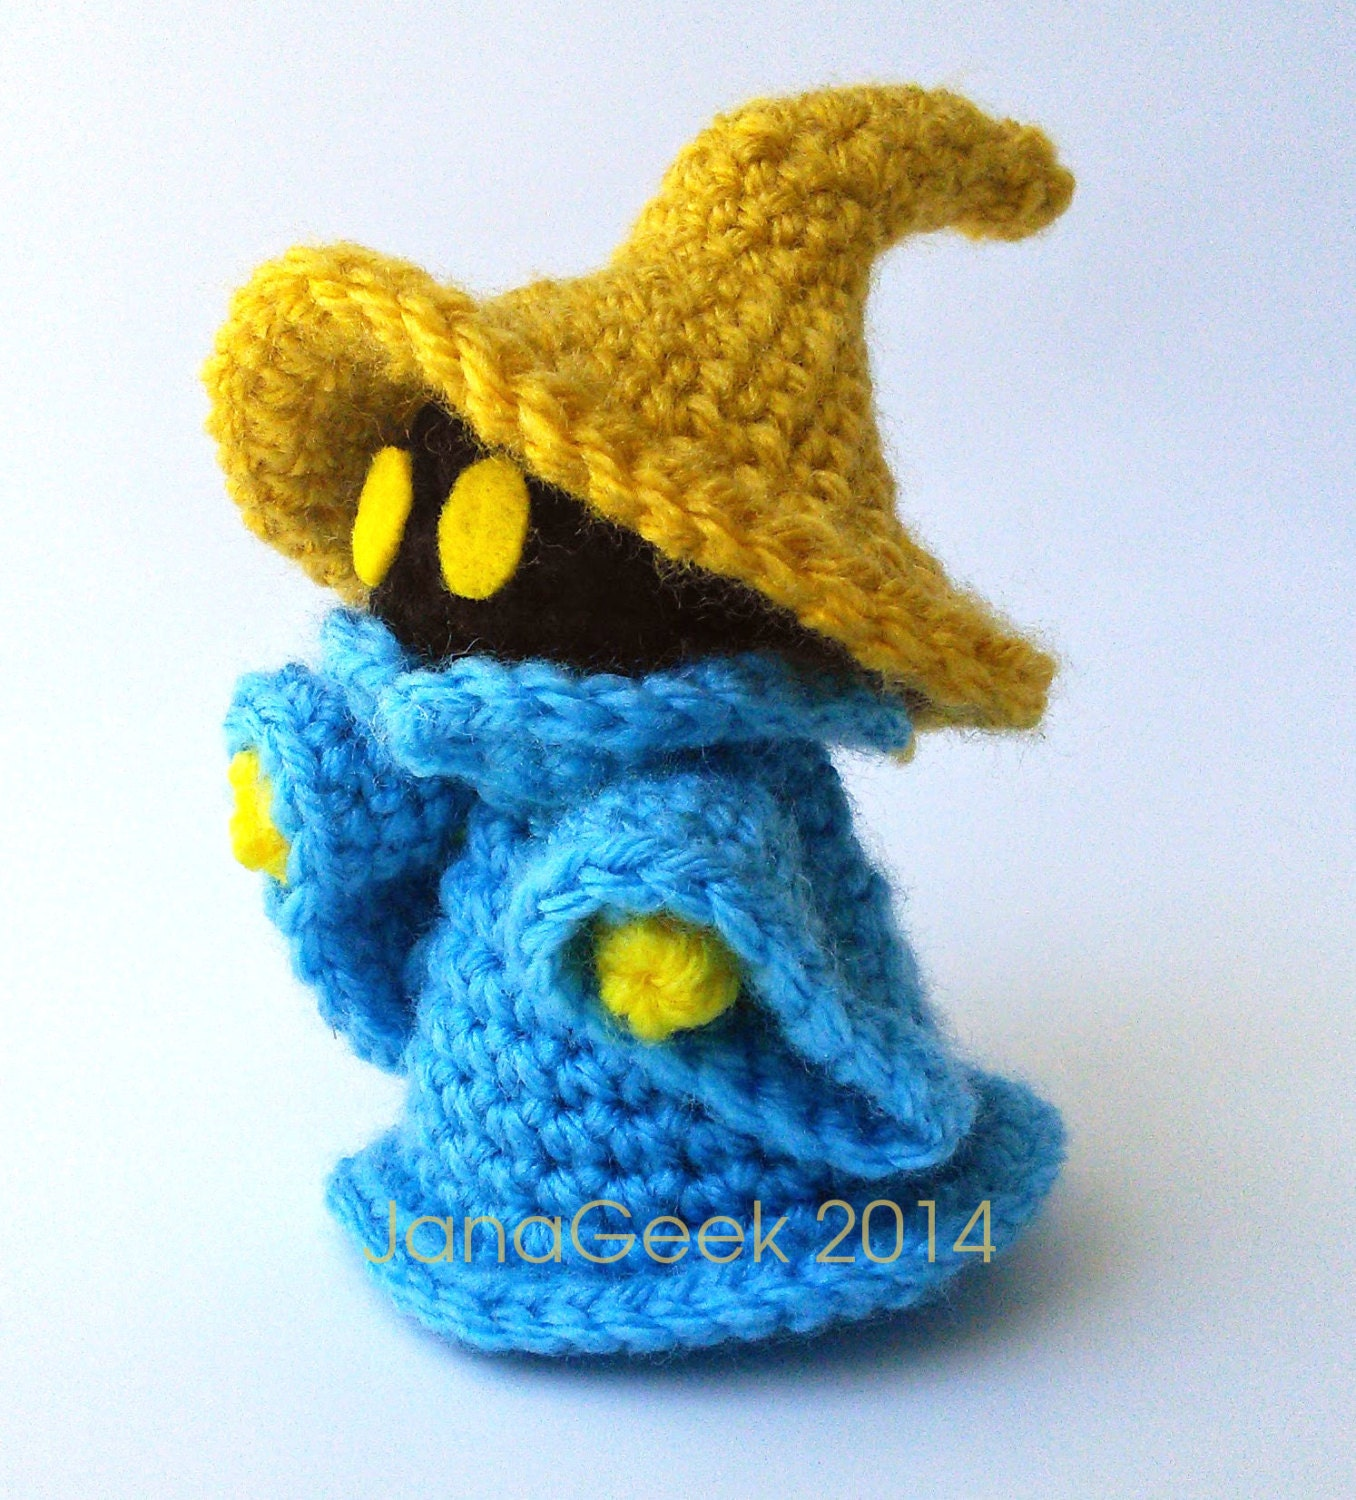 Runescape Crochet Patterns Images & Pictures - Becuo